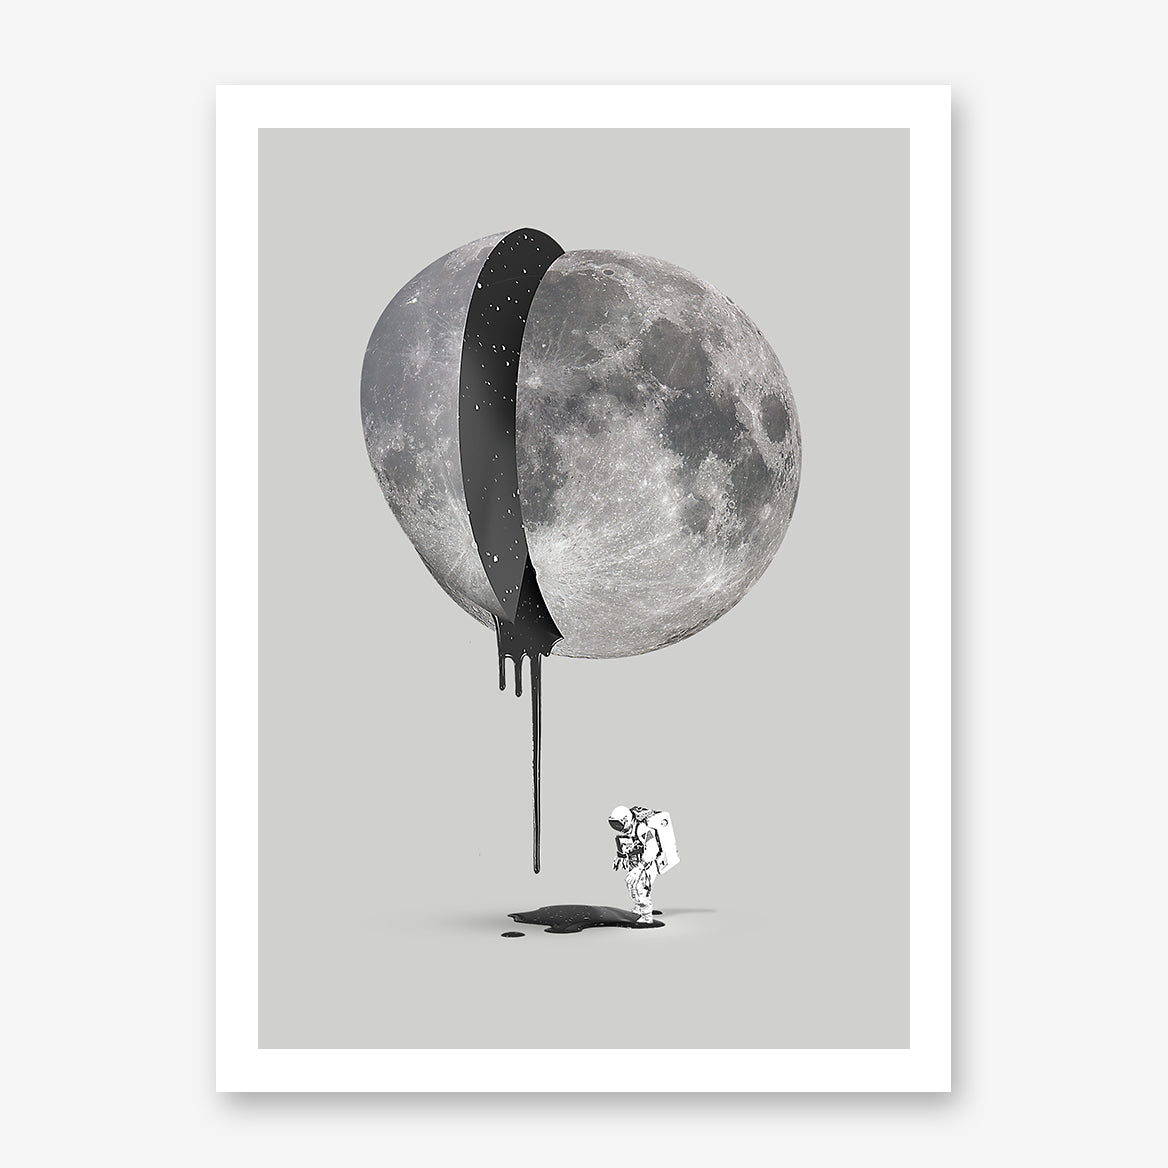 Grey illustration poster print by Robert Farkas, with astronaut and bleeding moon.